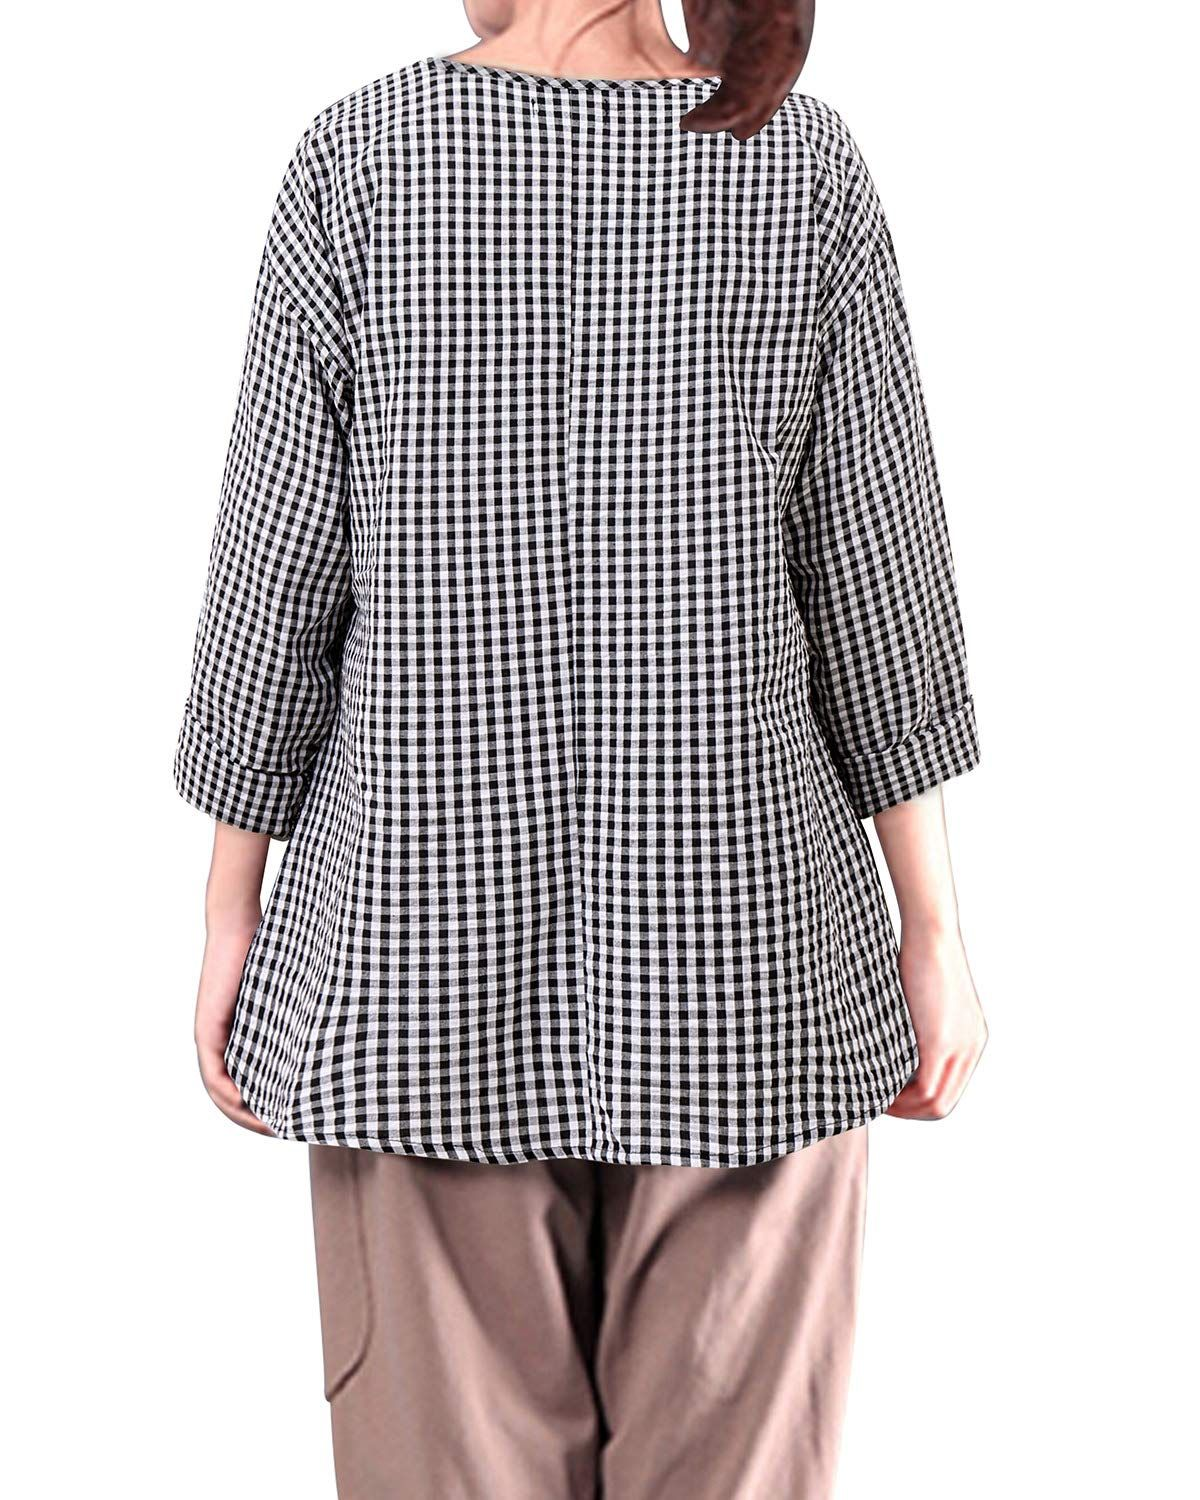 5e64b8329f2 LANISEN Womens Plus Size Long Sleeve Cotton Linen Casual Loose Plaid Blouse  Tops Shirts 5XL BlackWhite *** Click on the image for additional details.